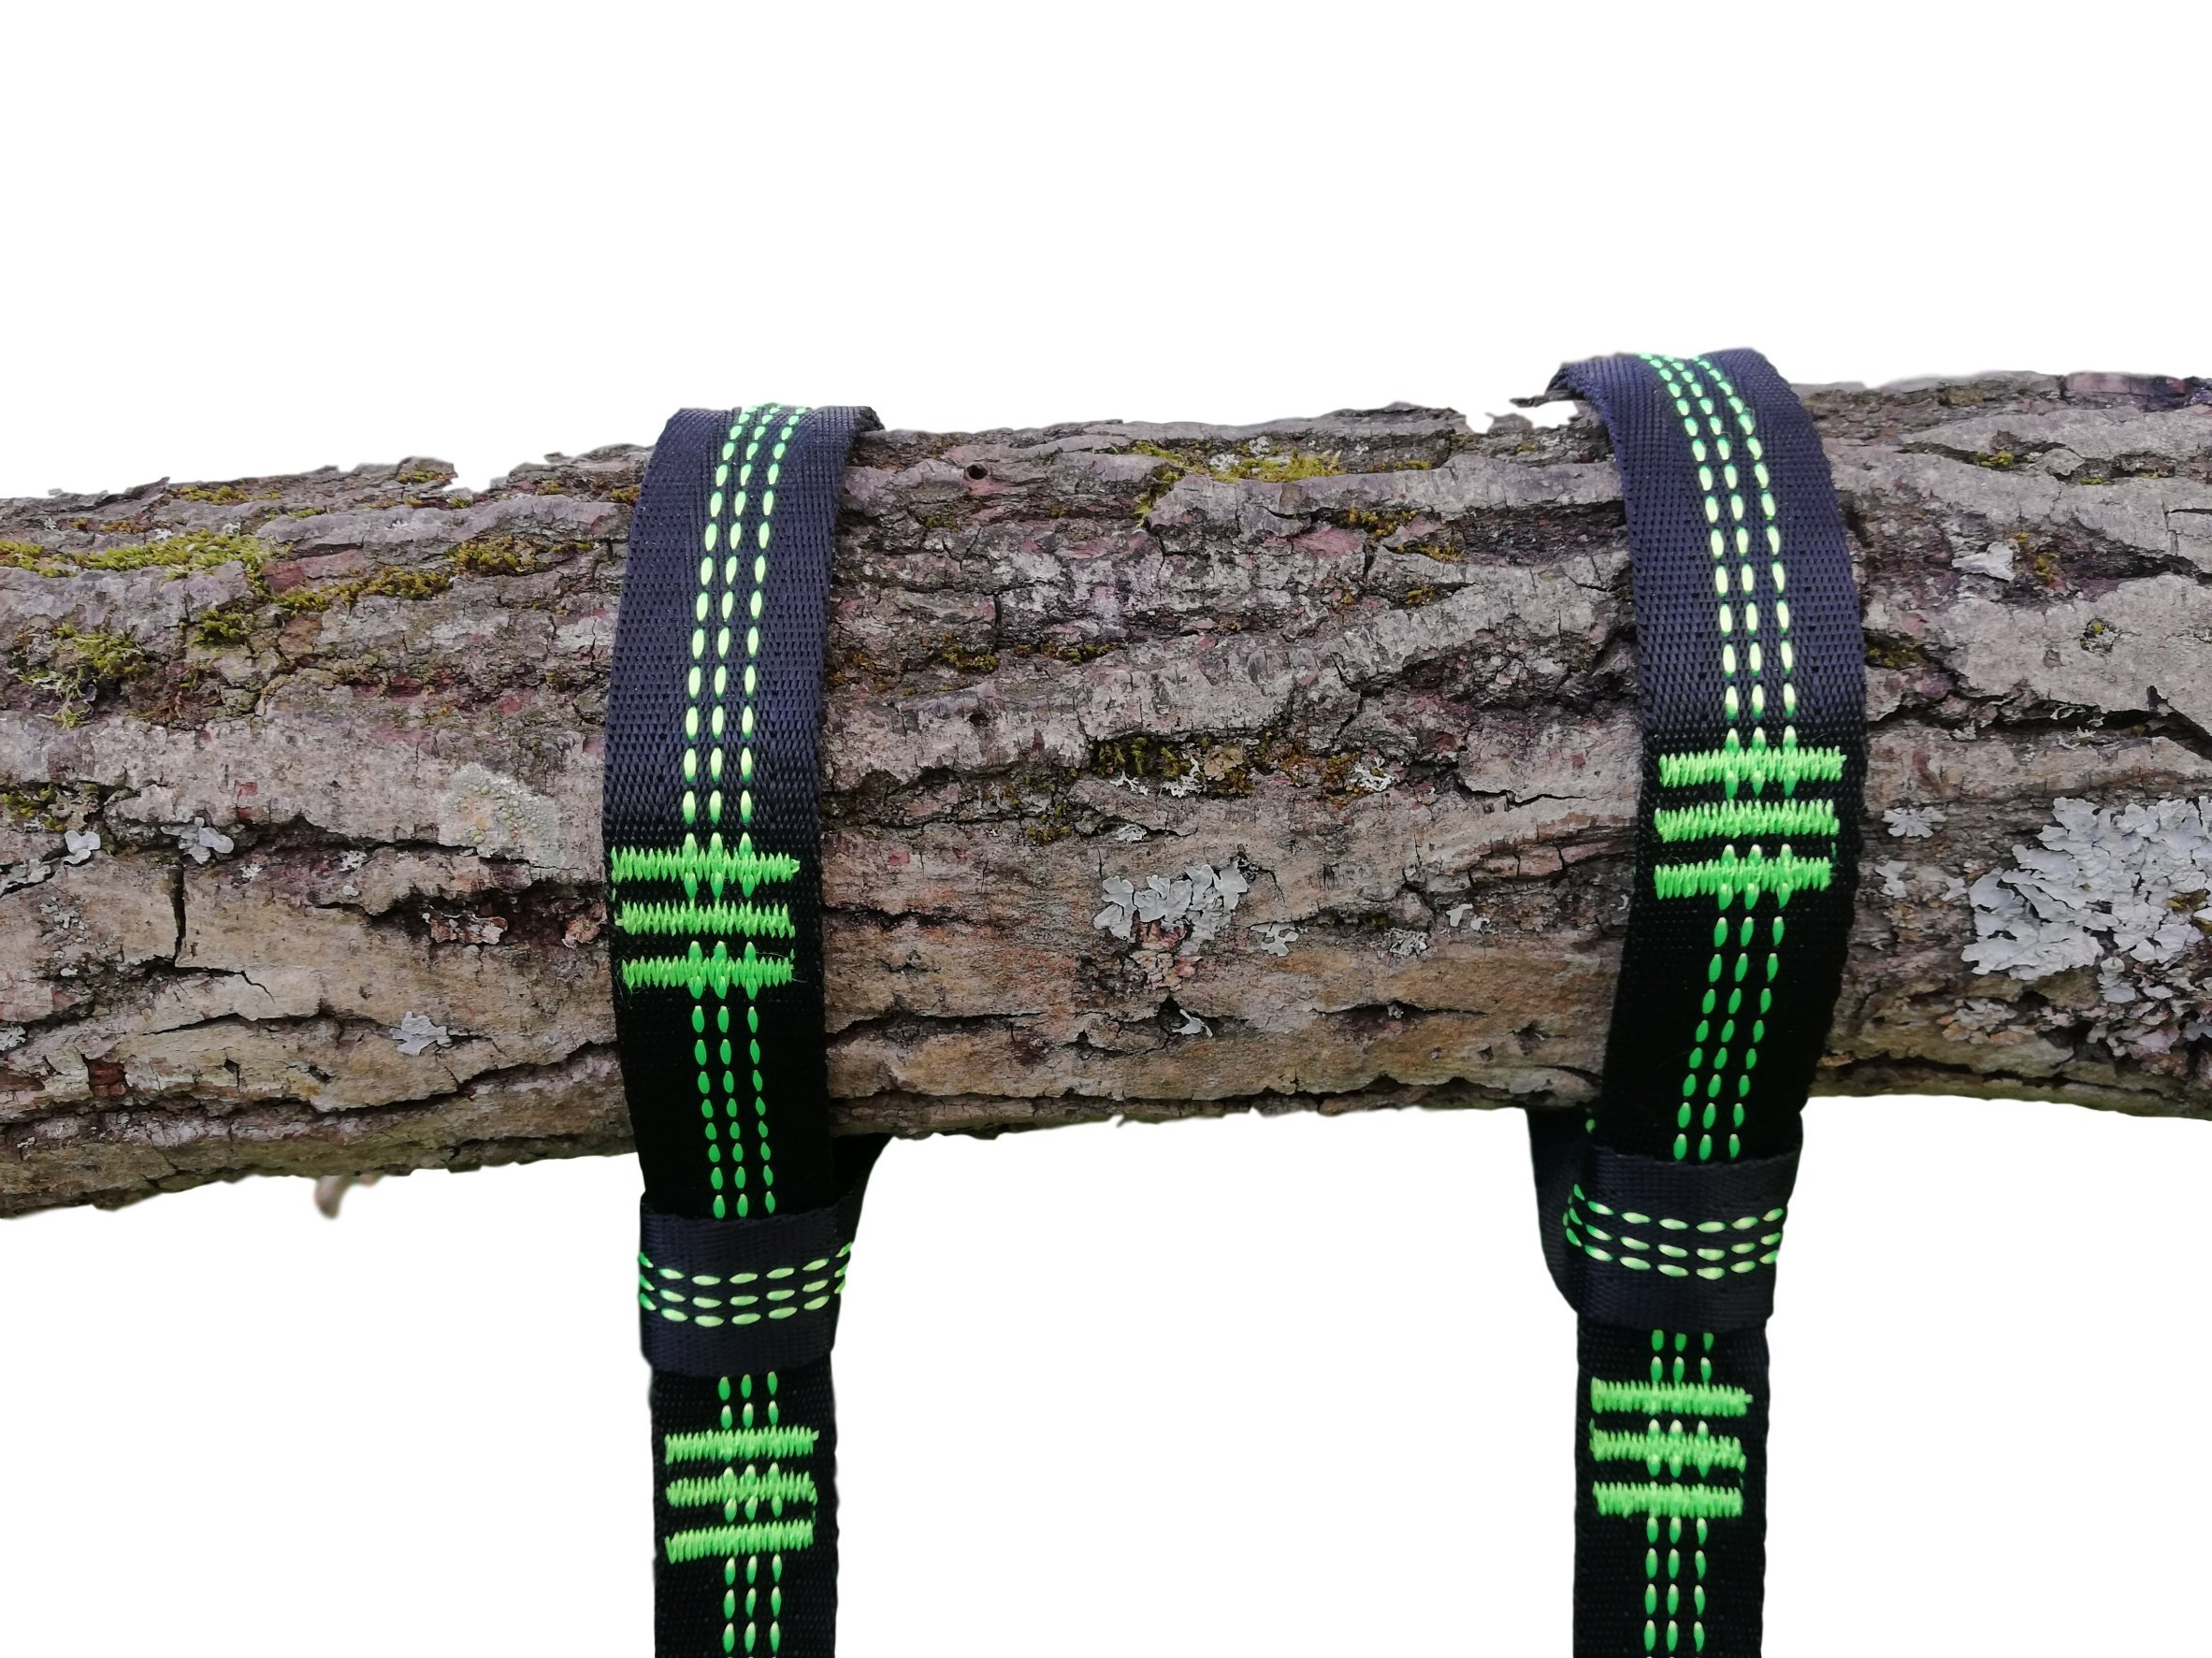 Tree Swing Hanging Straps Kit Holds 2000 lbs, 10ft Extra Long Straps with 2 Safe Lock Carabiners, 15+15 Loops, Perfect for Tree Swings and Hammocks, Easy Fast Installation